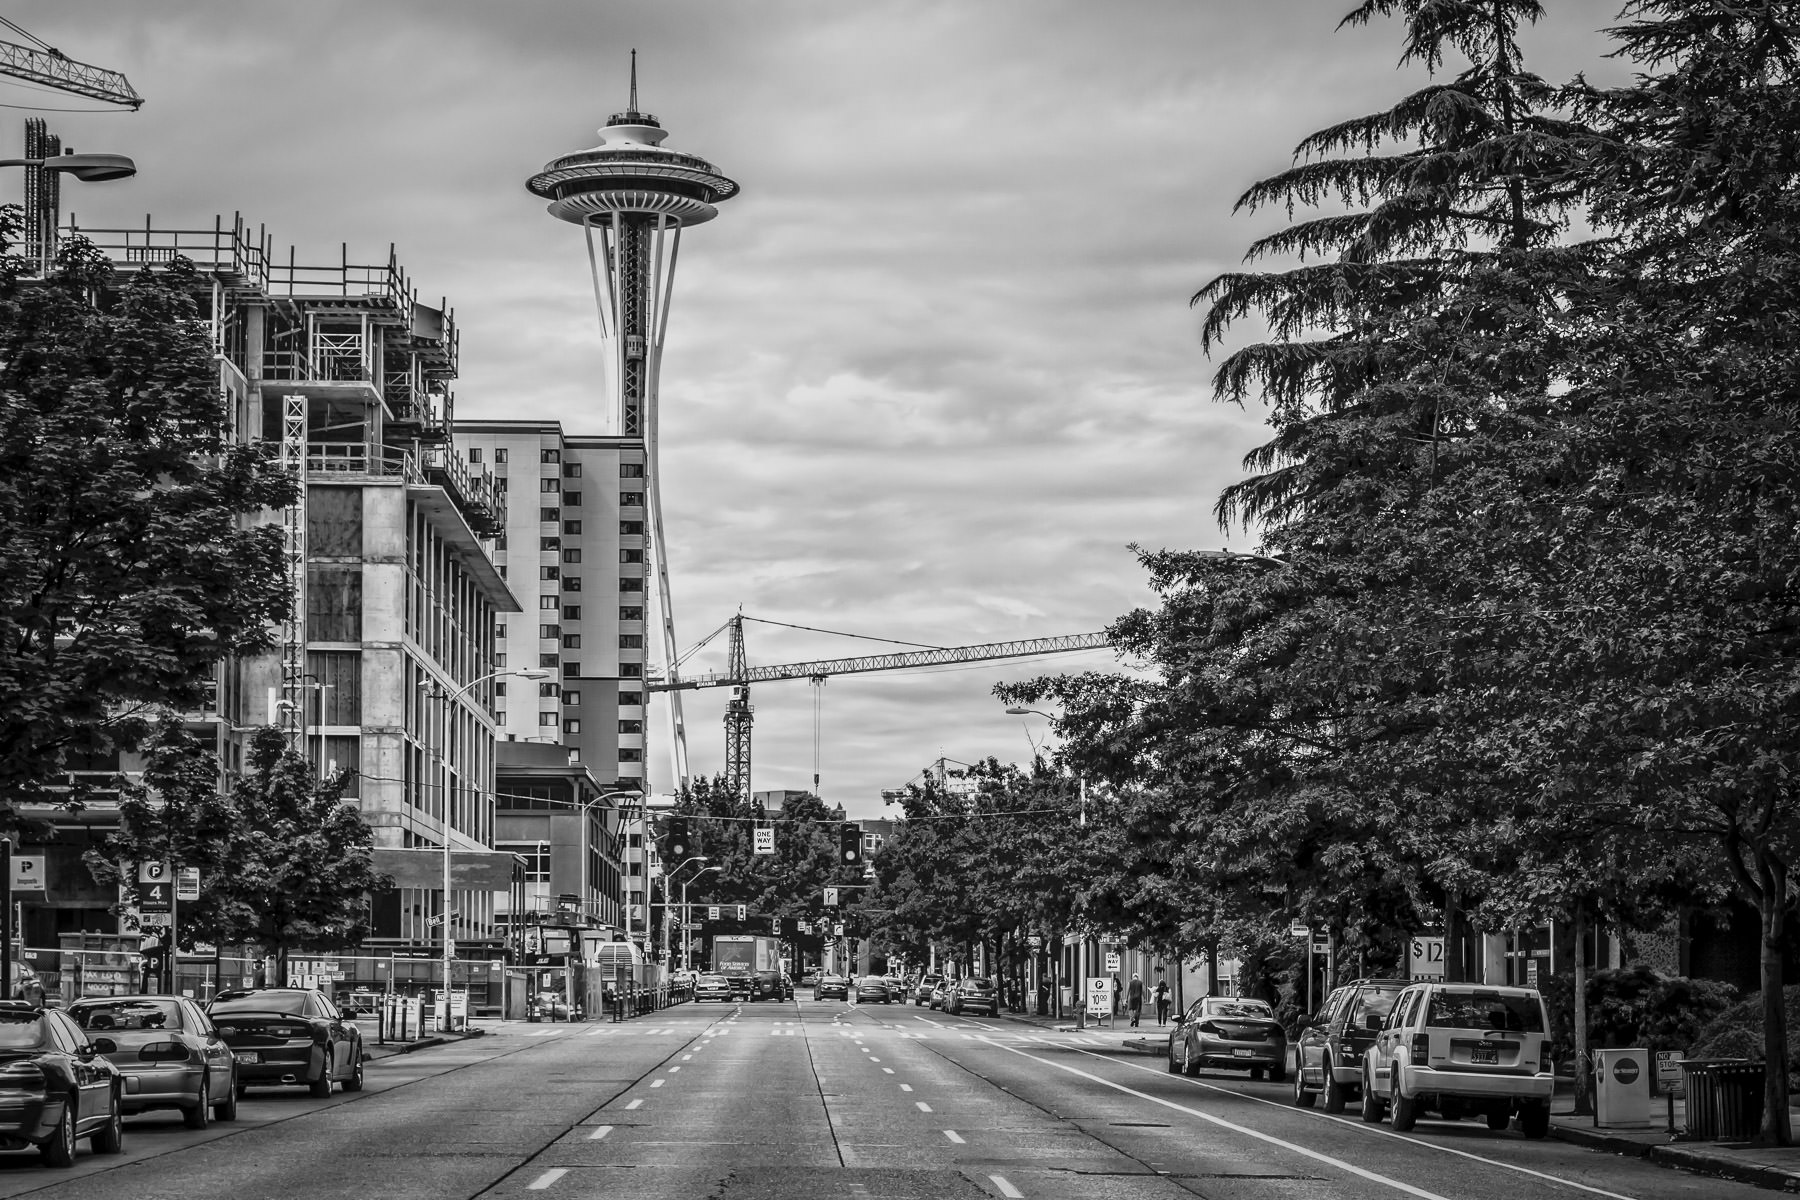 The Seattle Space Needle as seen along 6th Avenue near the intersection of Blanchard Street.